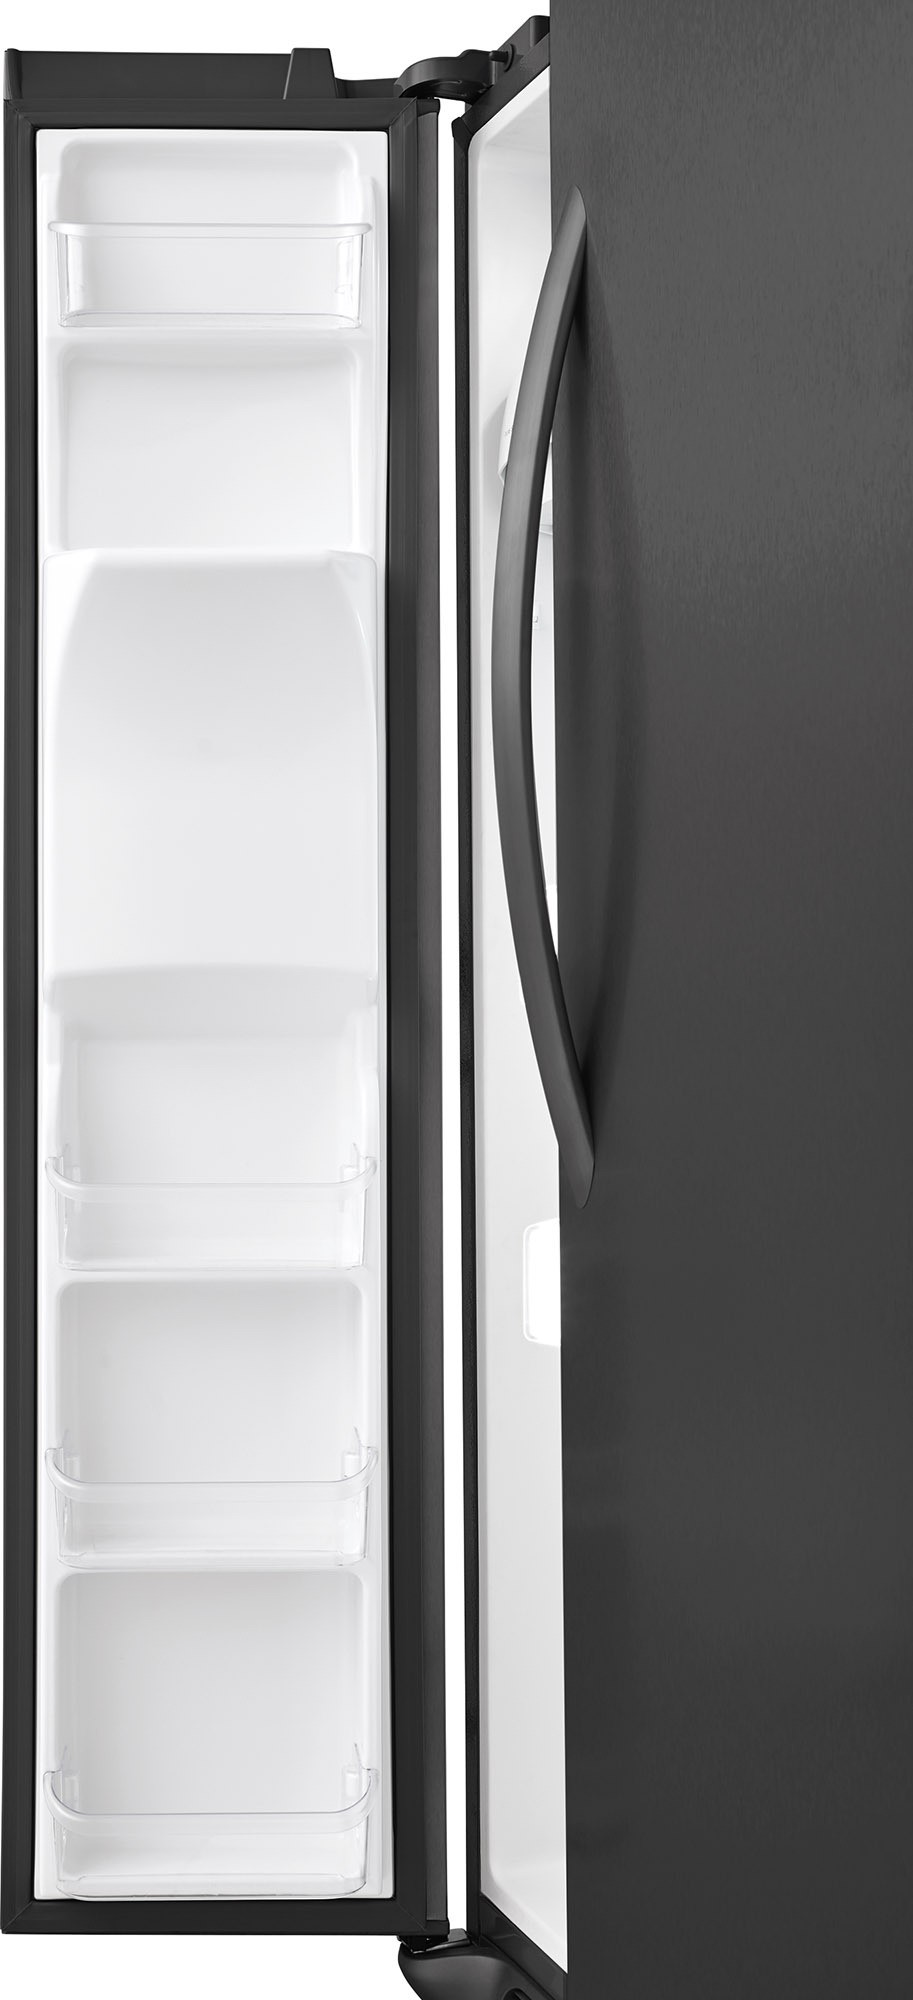 Fgss2635td Frigidaire Gallery 36 Quot Side By Side